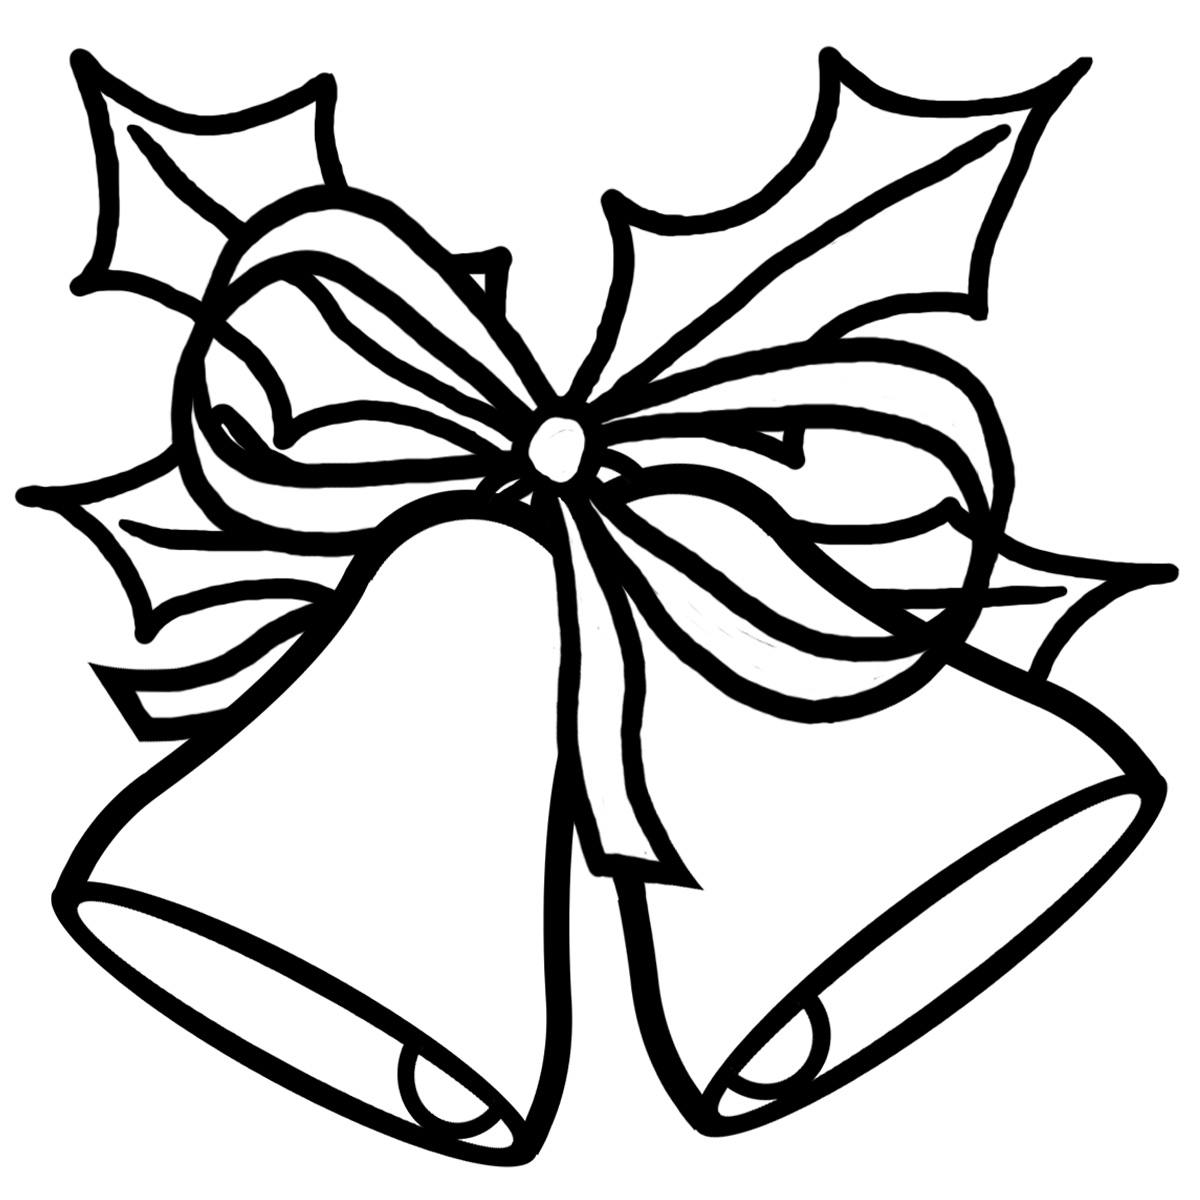 Line Drawing Christmas : Gift bag clipart black and white panda free